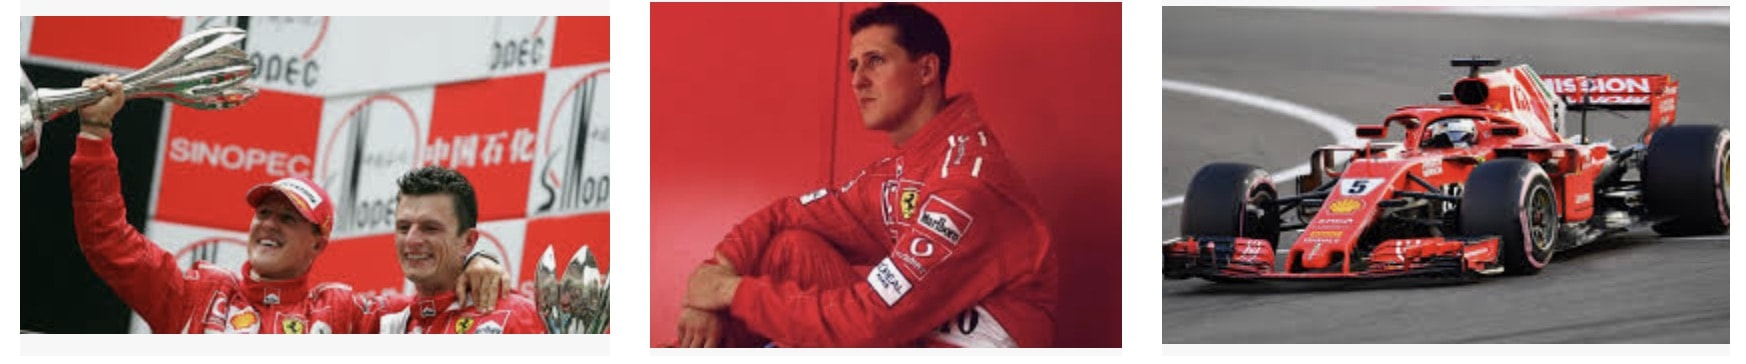 Michael Schumacher F1